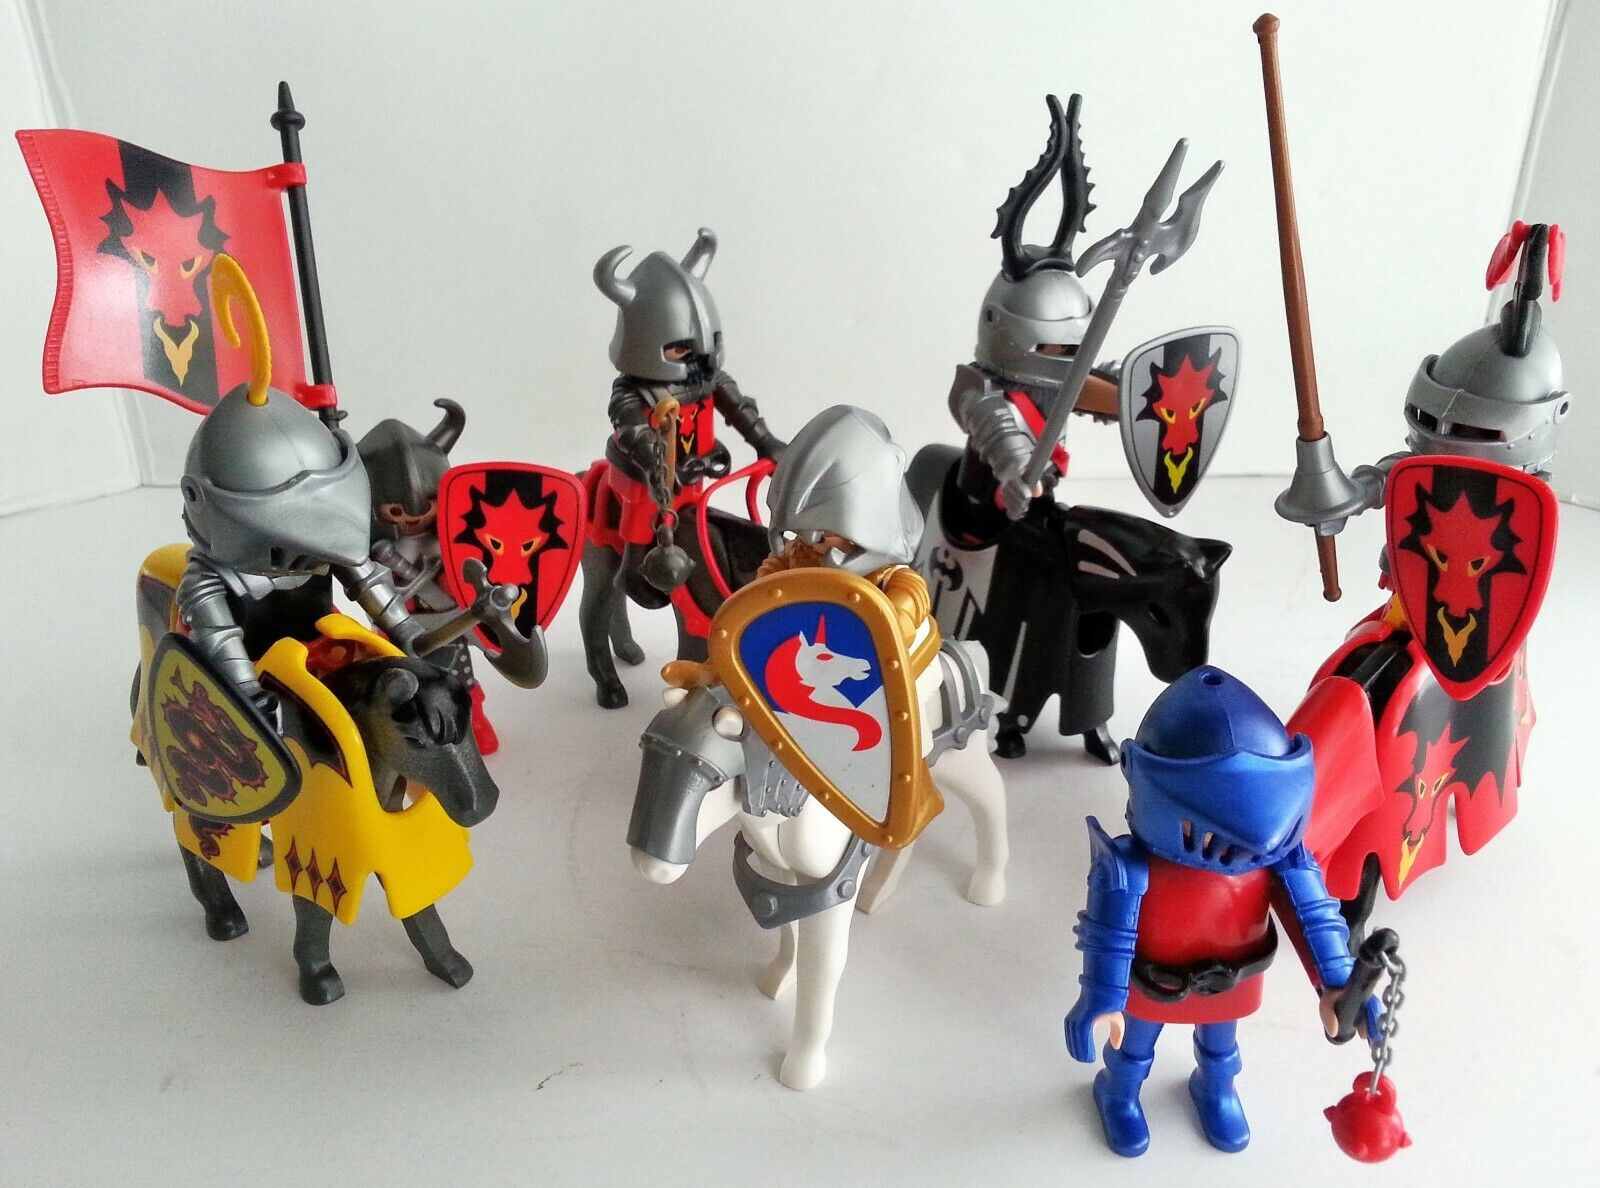 Playmobil lot of Horses Knights Accessories Armor battle Jousting Medieval 1990s